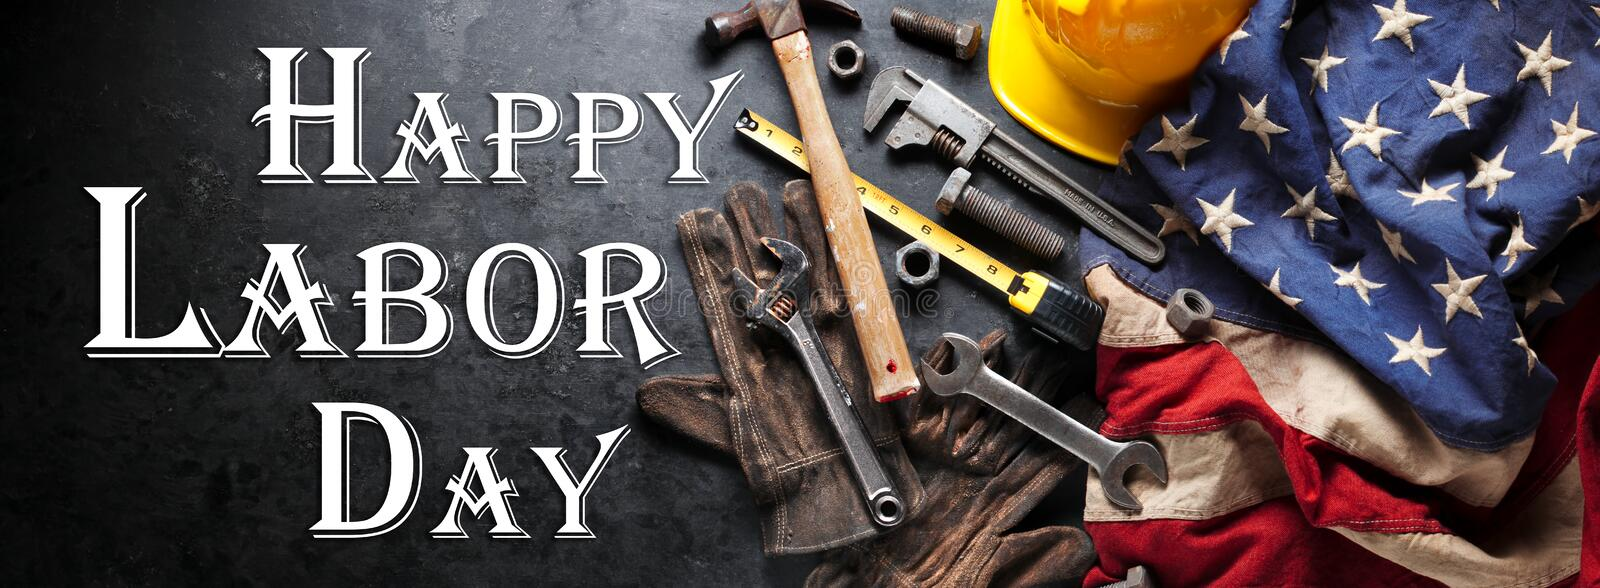 Happy Labor day background with construction and manufacturing tools with patriotic US, USA, American flag background. Happy Labor Day royalty free stock image